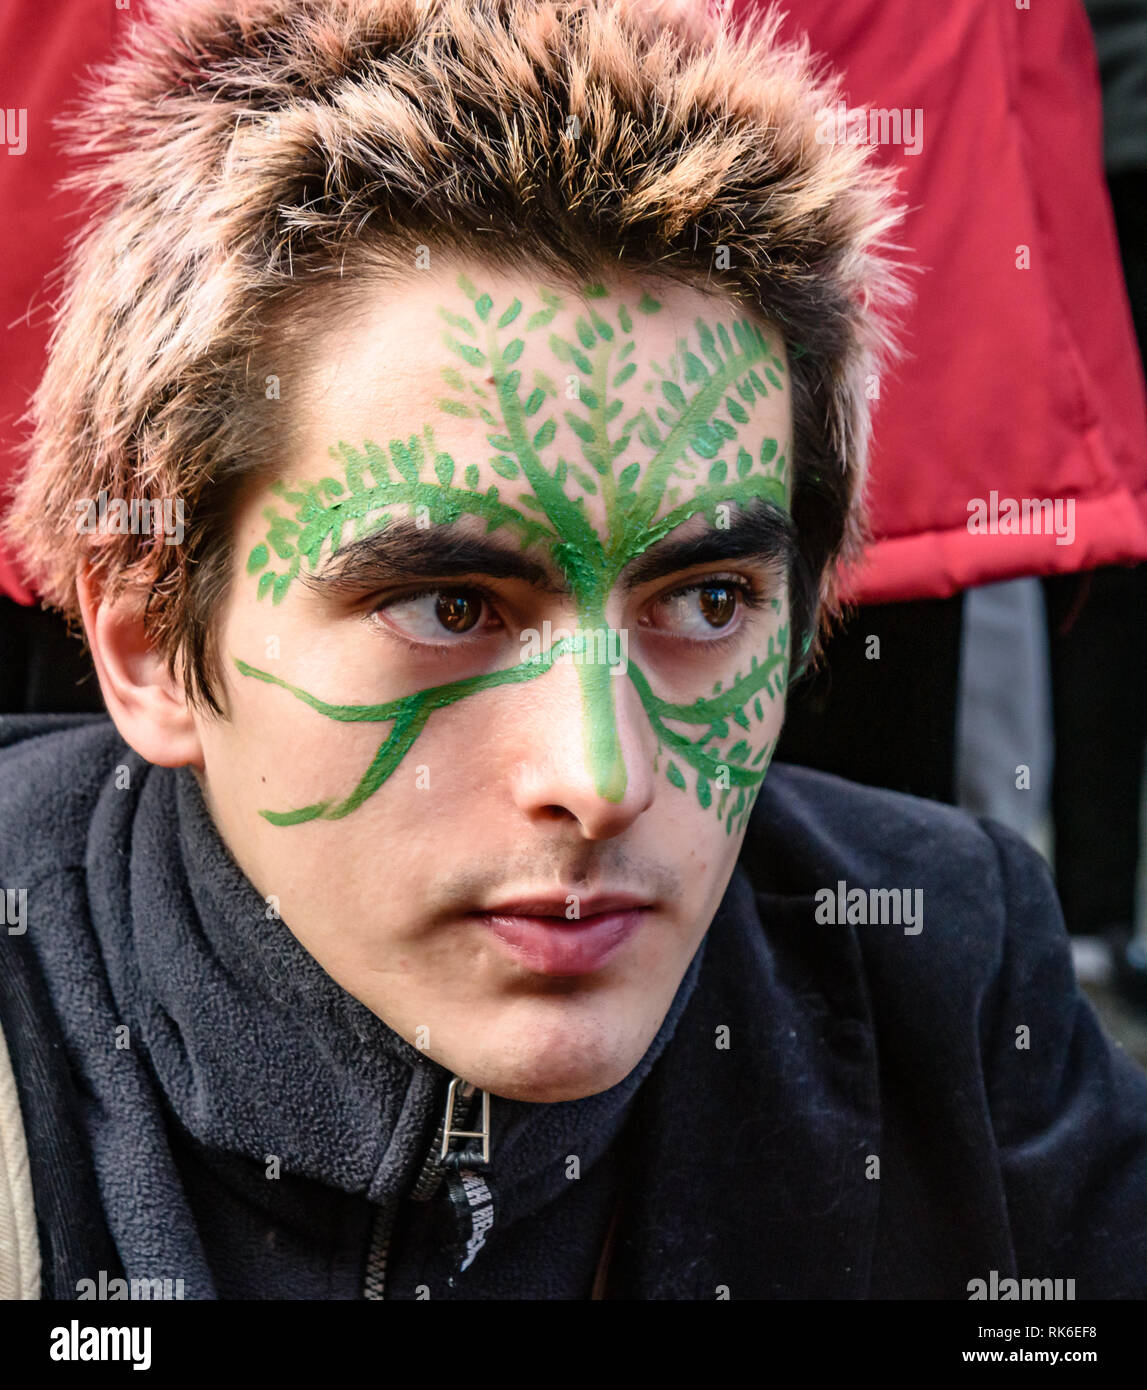 London, UK. 9th February 2019. A man having his face painted at the Extinction Rebellionstreet party blocking the A10 Kingsland High St in Dalston for two housrs with speeches, music and spoken word performances, t-shirt printing, face painting and free food, with dancing to a samba band which led them for a brief march up the road before returning to continue the protest in Gillett Square.  XR is in open Rebellion against the UK Government for its criminal inaction in the face of impending climate and ecological collapse.  Peter Marshall/Alamy Live News - Stock Image